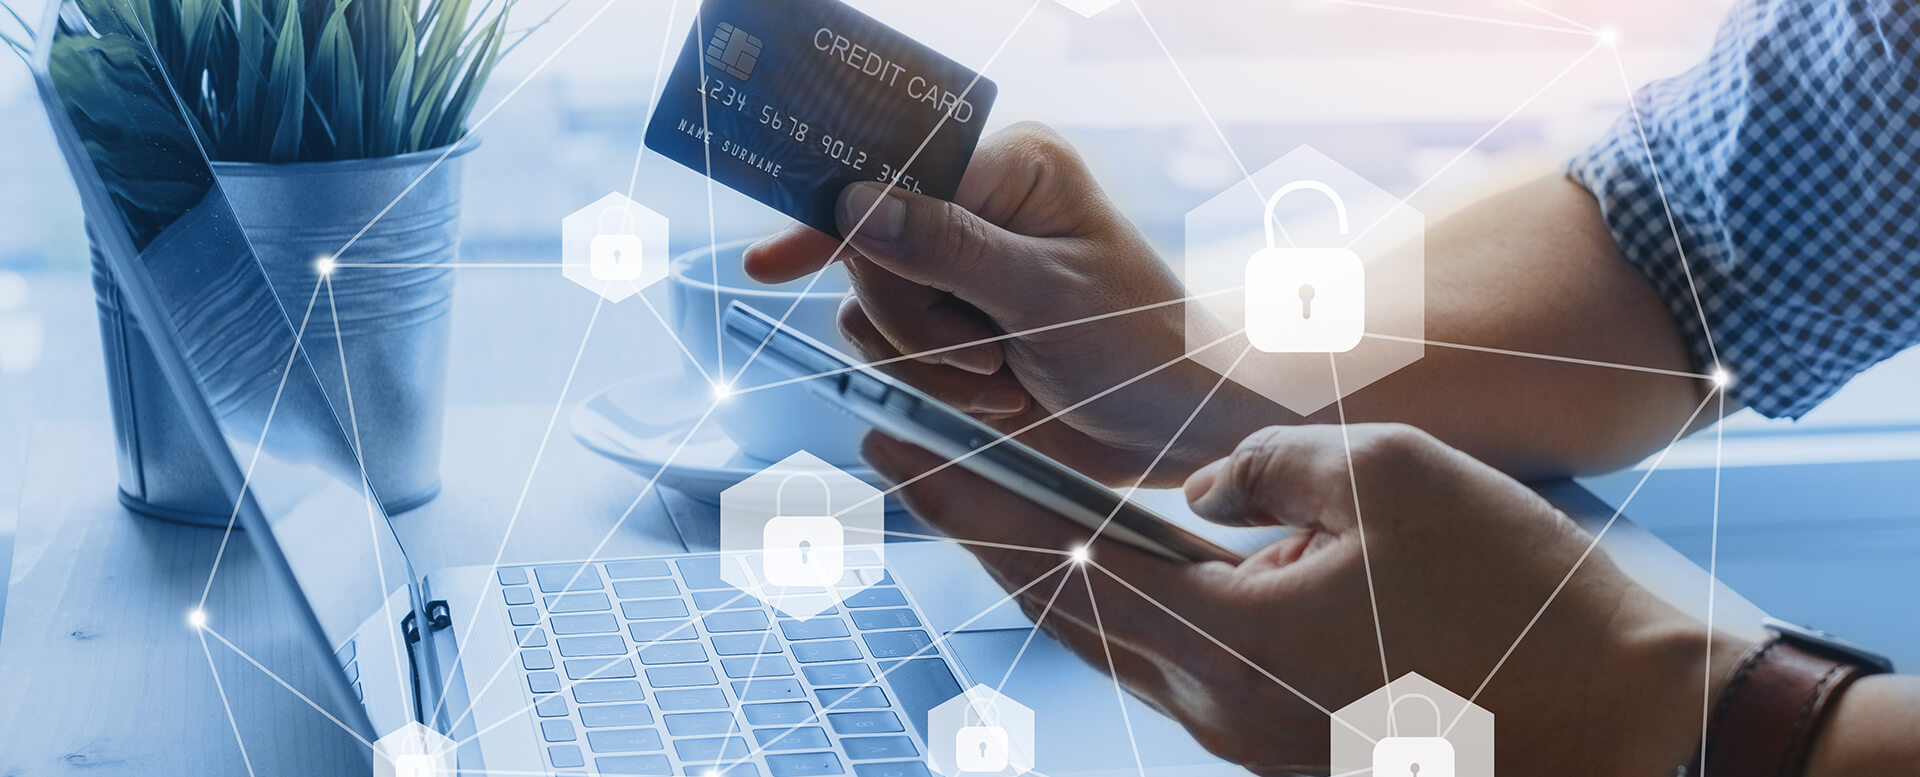 Important Security Concerns for Online Banking